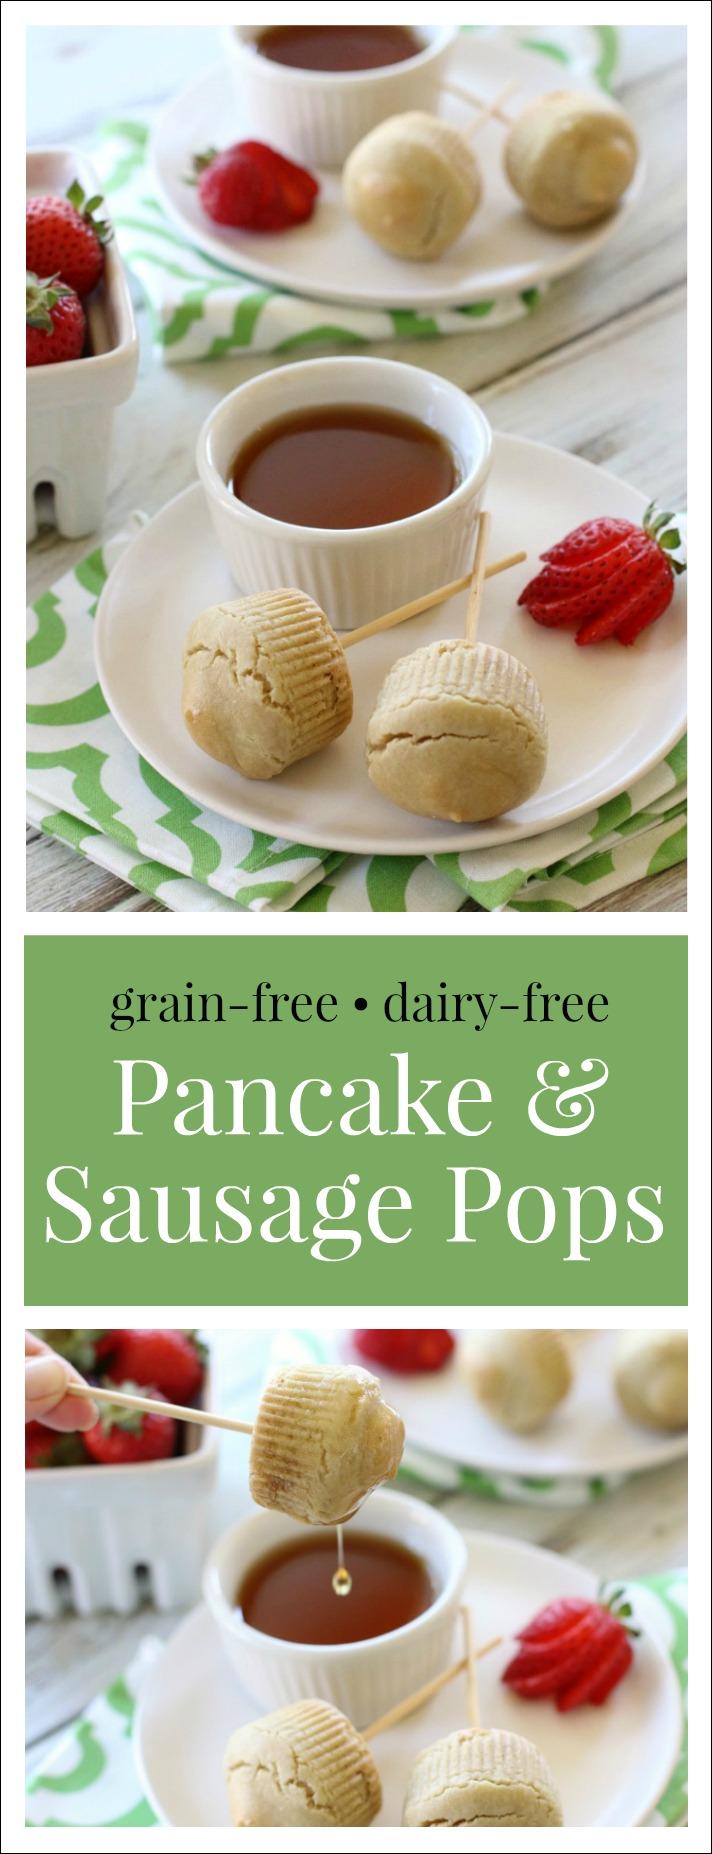 These adorable little kid-favorite Pancake & Sausage Pops have a delicious maple-sausage center encased in a fluffy grain-free pancake muffin.